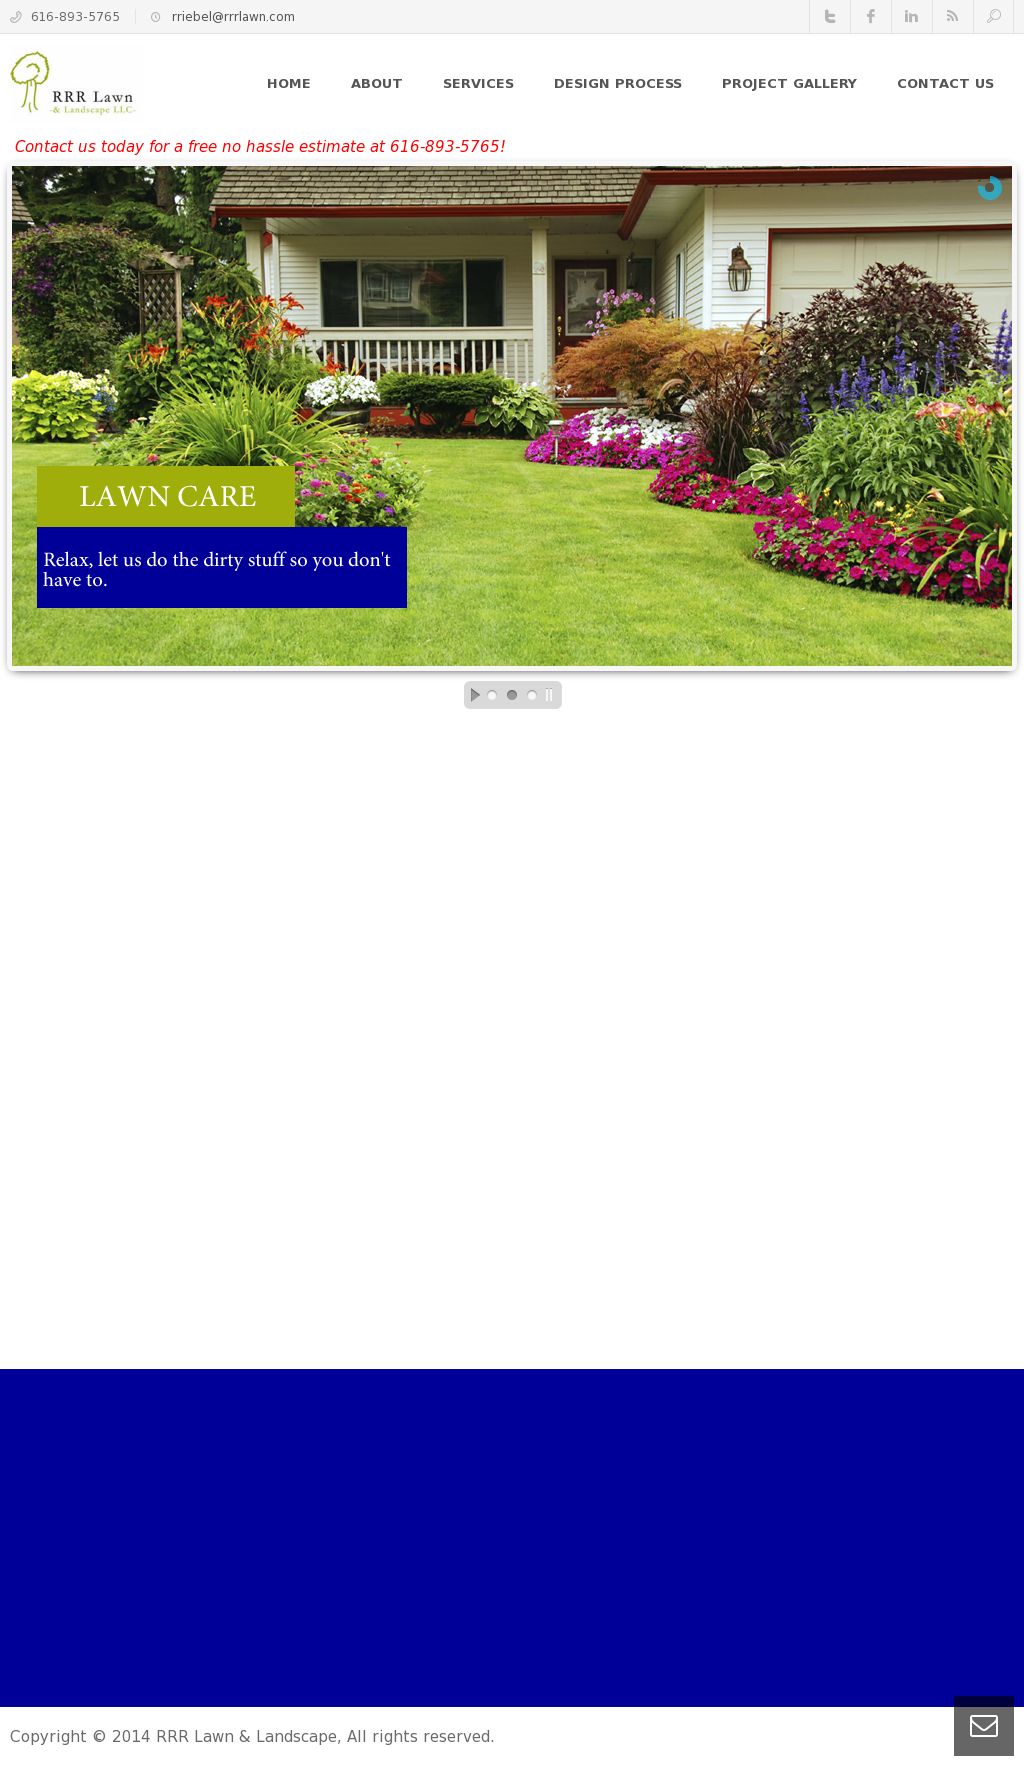 Rrr Lawn Landscape Compeors Revenue And Employees Owler Company Profile